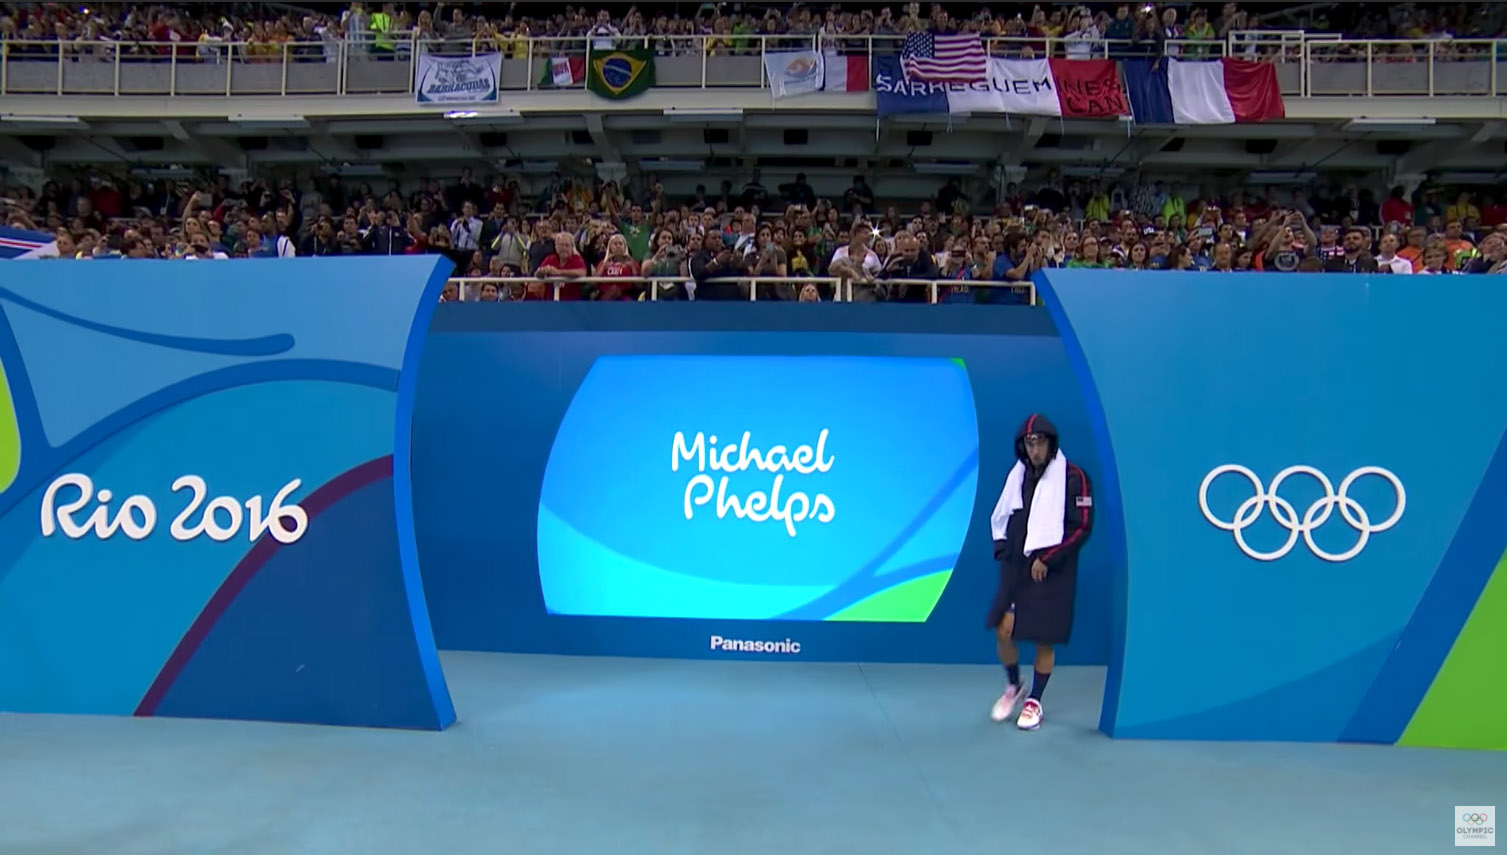 Rio_Swimming_Video-Board-2.jpg